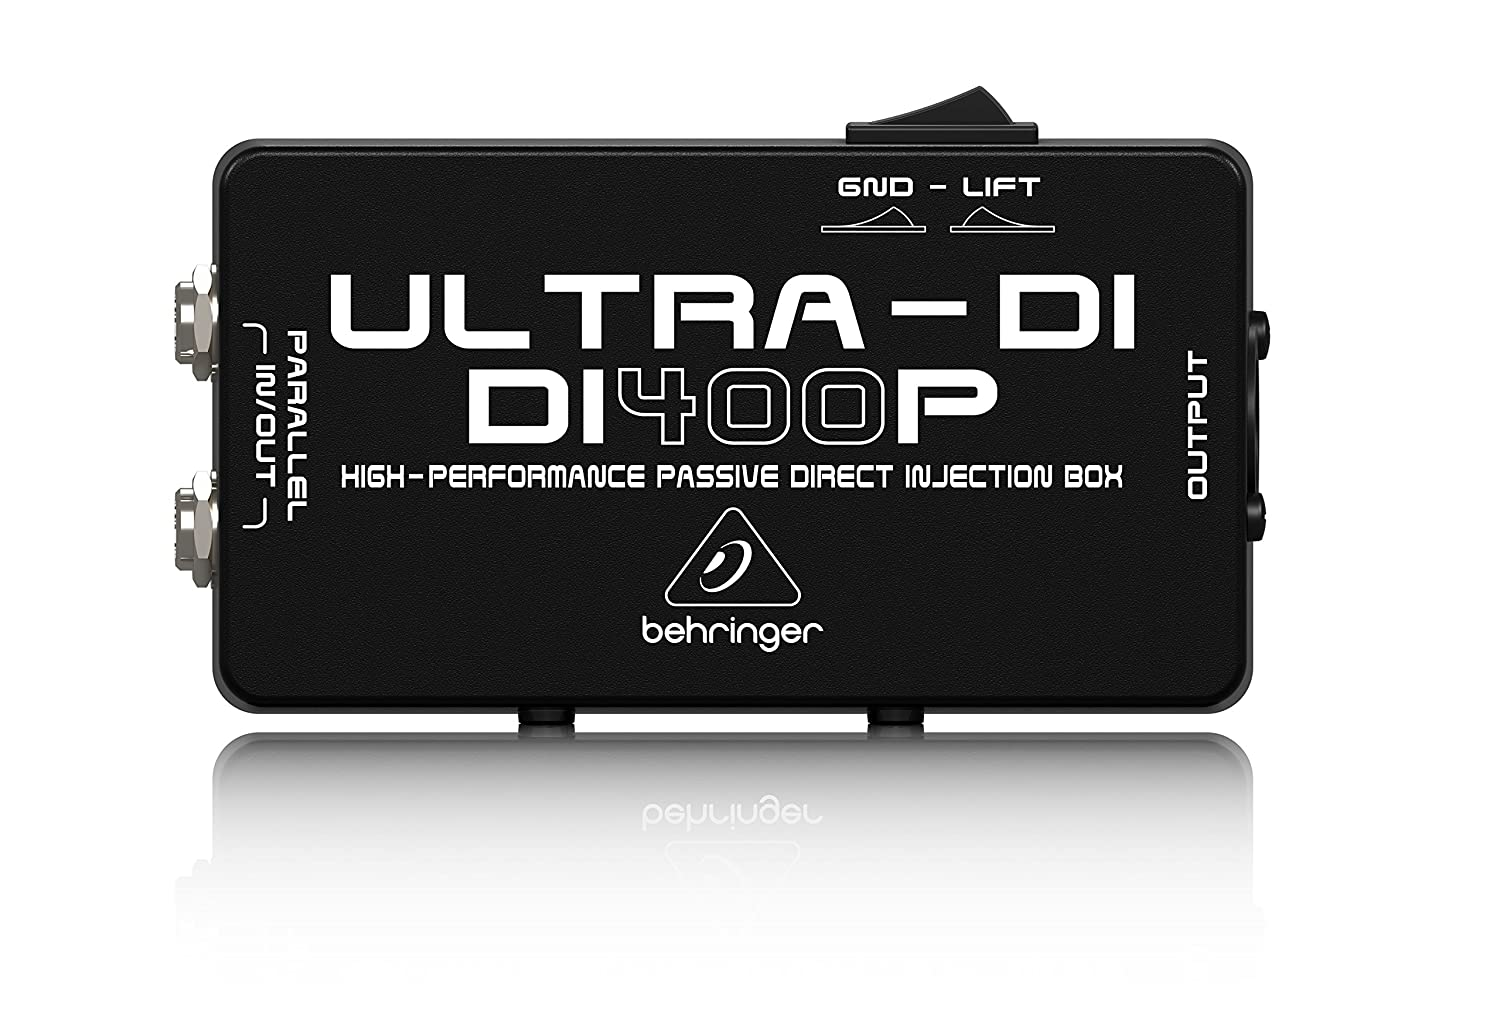 Amazon.com: BEHRINGER ULTRA-DI DI400P: Musical Instruments